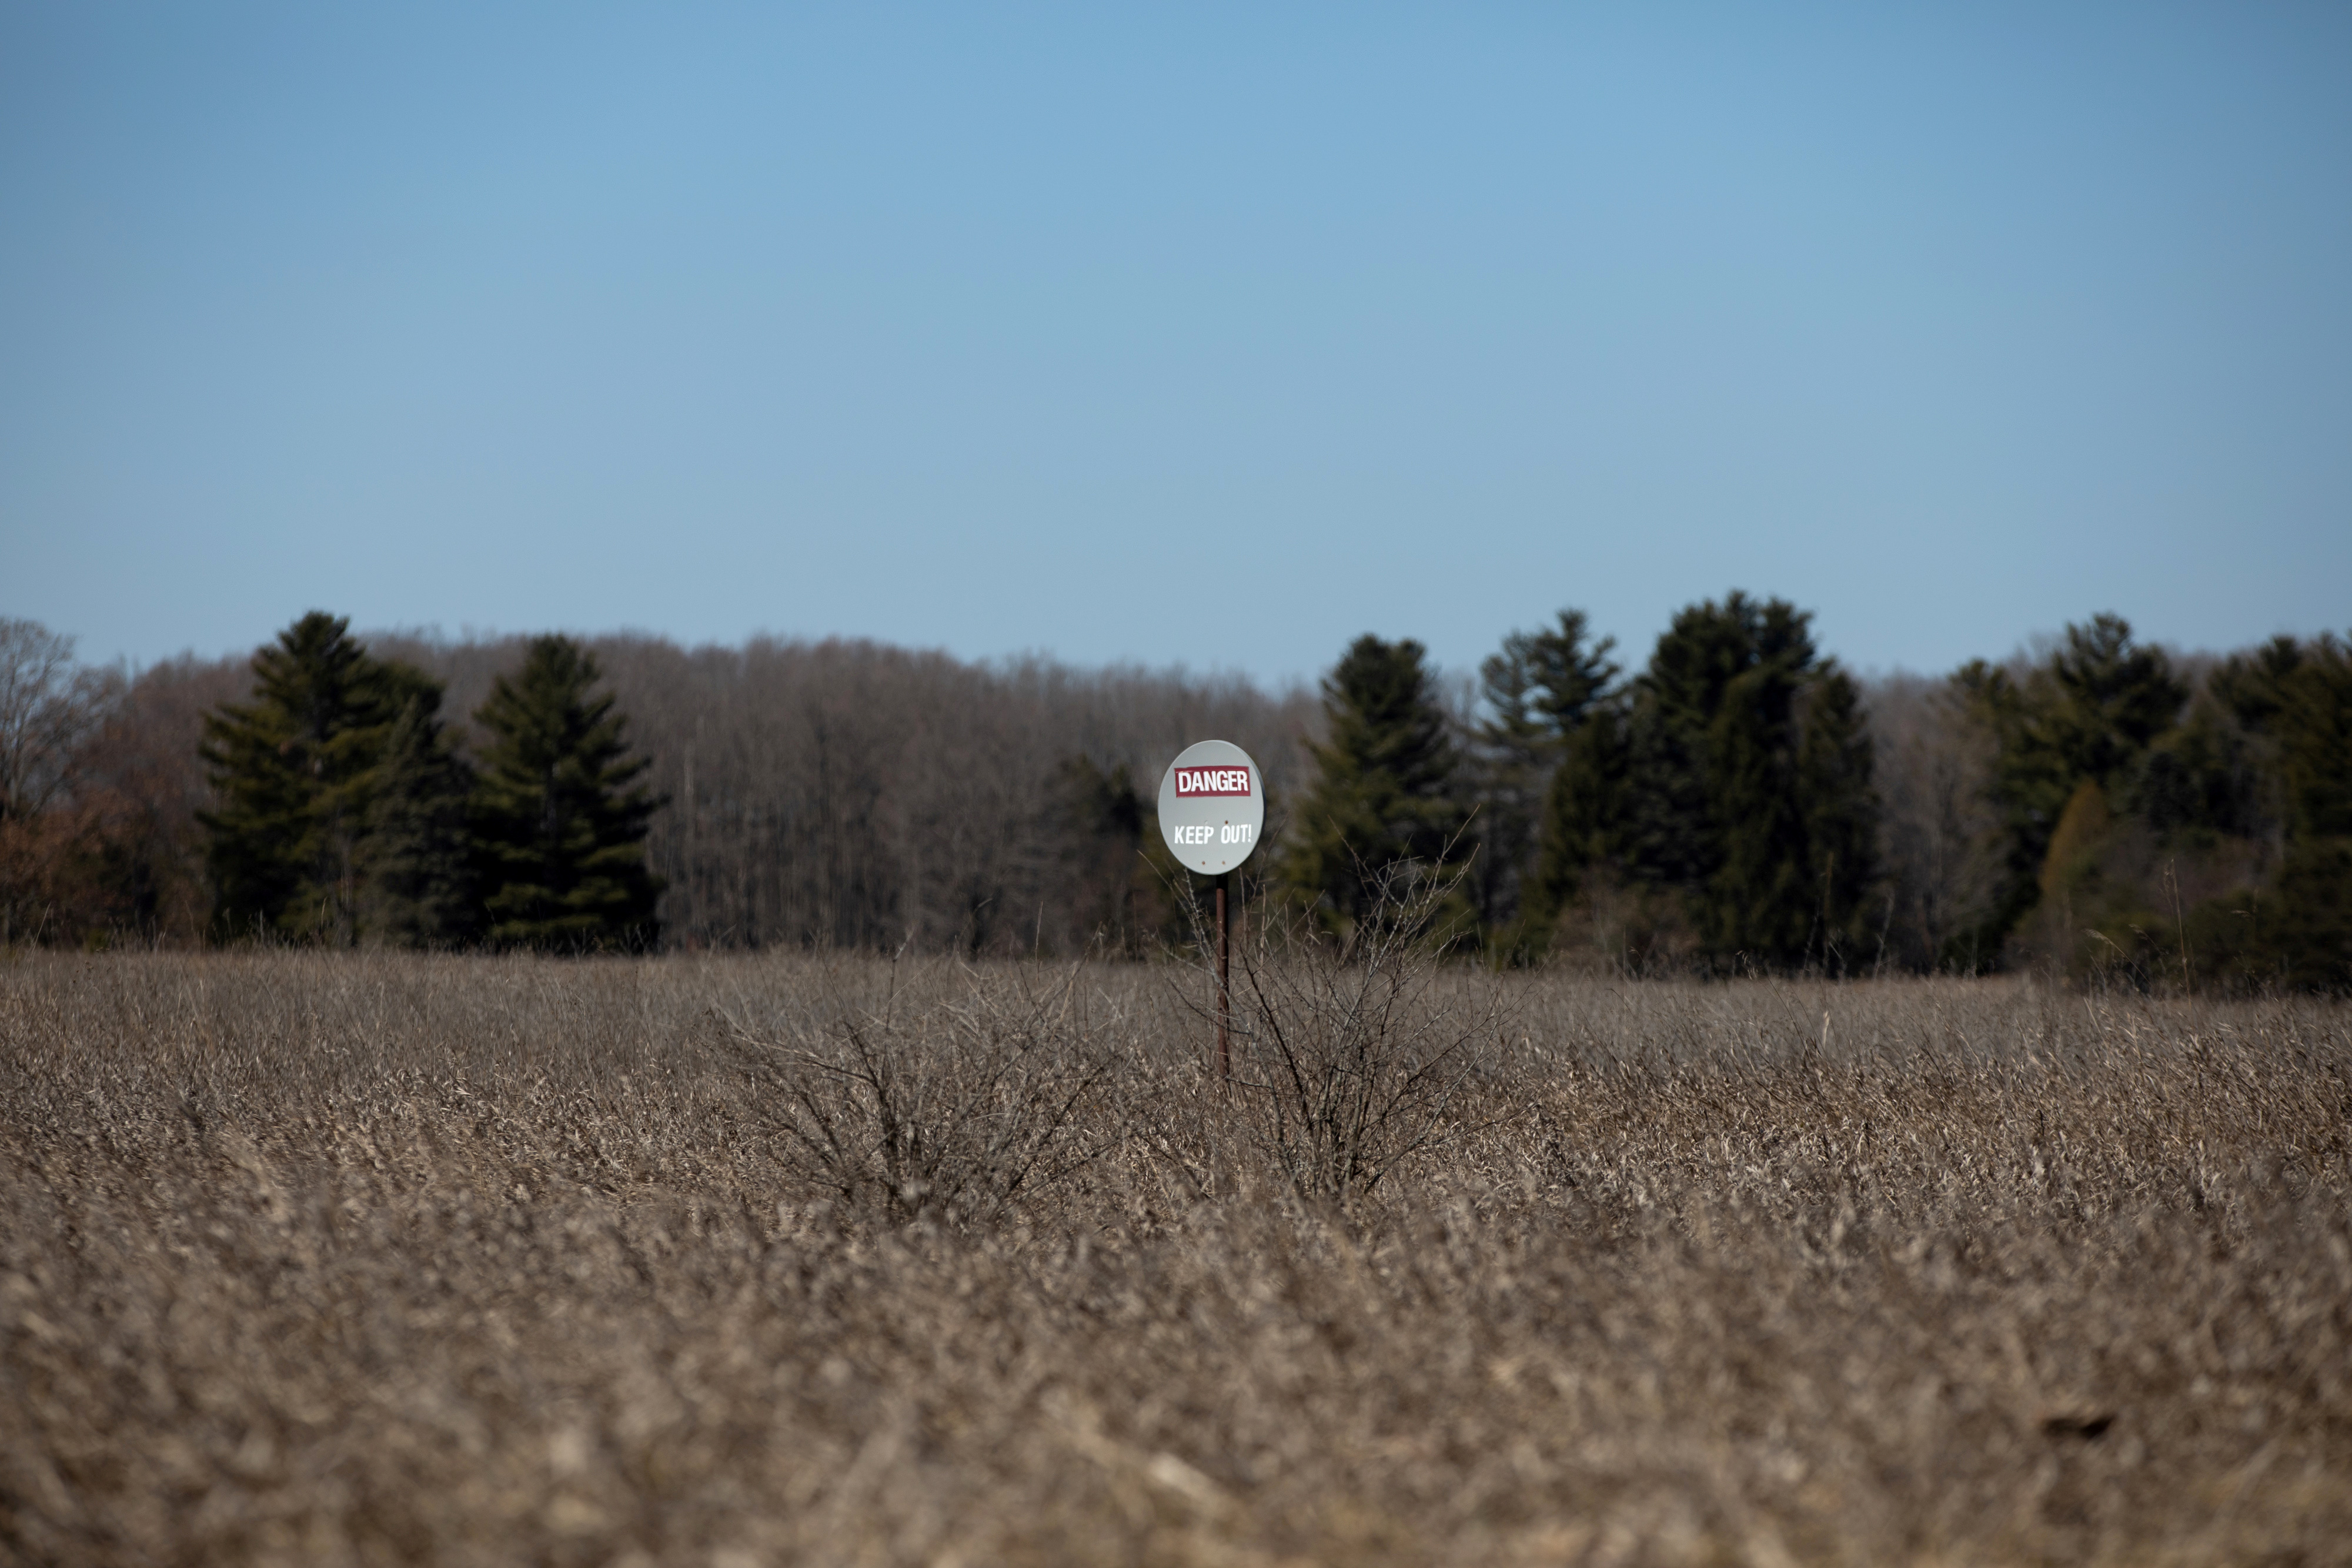 A piece of land that has a federal drilling lease issued for oil and gas development is seen in Mecosta County, Michigan, U.S., March 20, 2021. Picture taken March 20, 2021.  REUTERS/Emily Elconin/File Photo